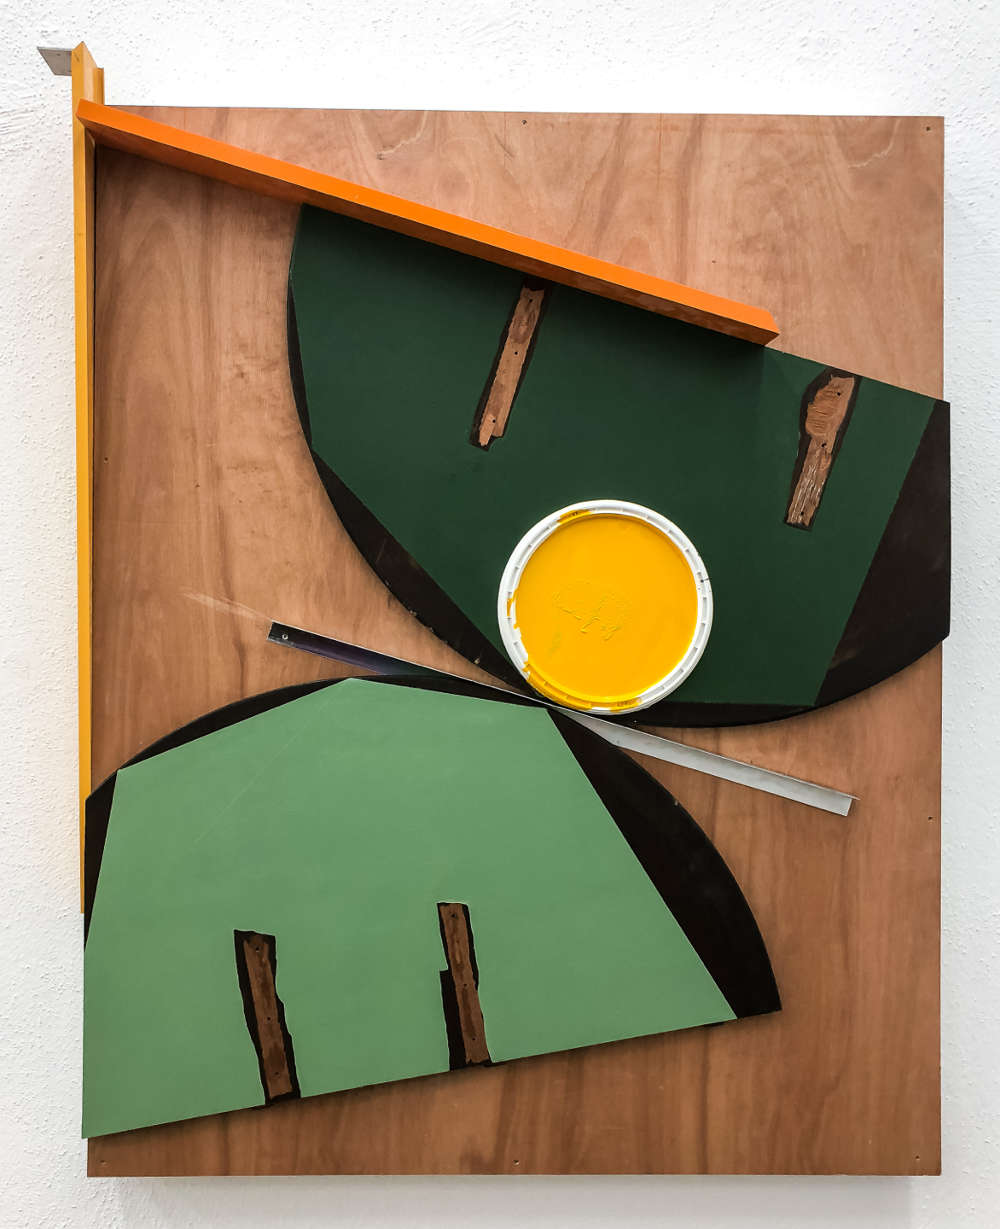 Pedro Cabrita Reis, The Redux Suite (2nd series / the baroque paintings) #9, 2018. Aluminum and enamel on found table top, plastic lid, aluminum frame and plywood 156 x 126 x 22 cm (61 3/8 x 49 5/8 x 8 5/8 in.) signed and dated on the back